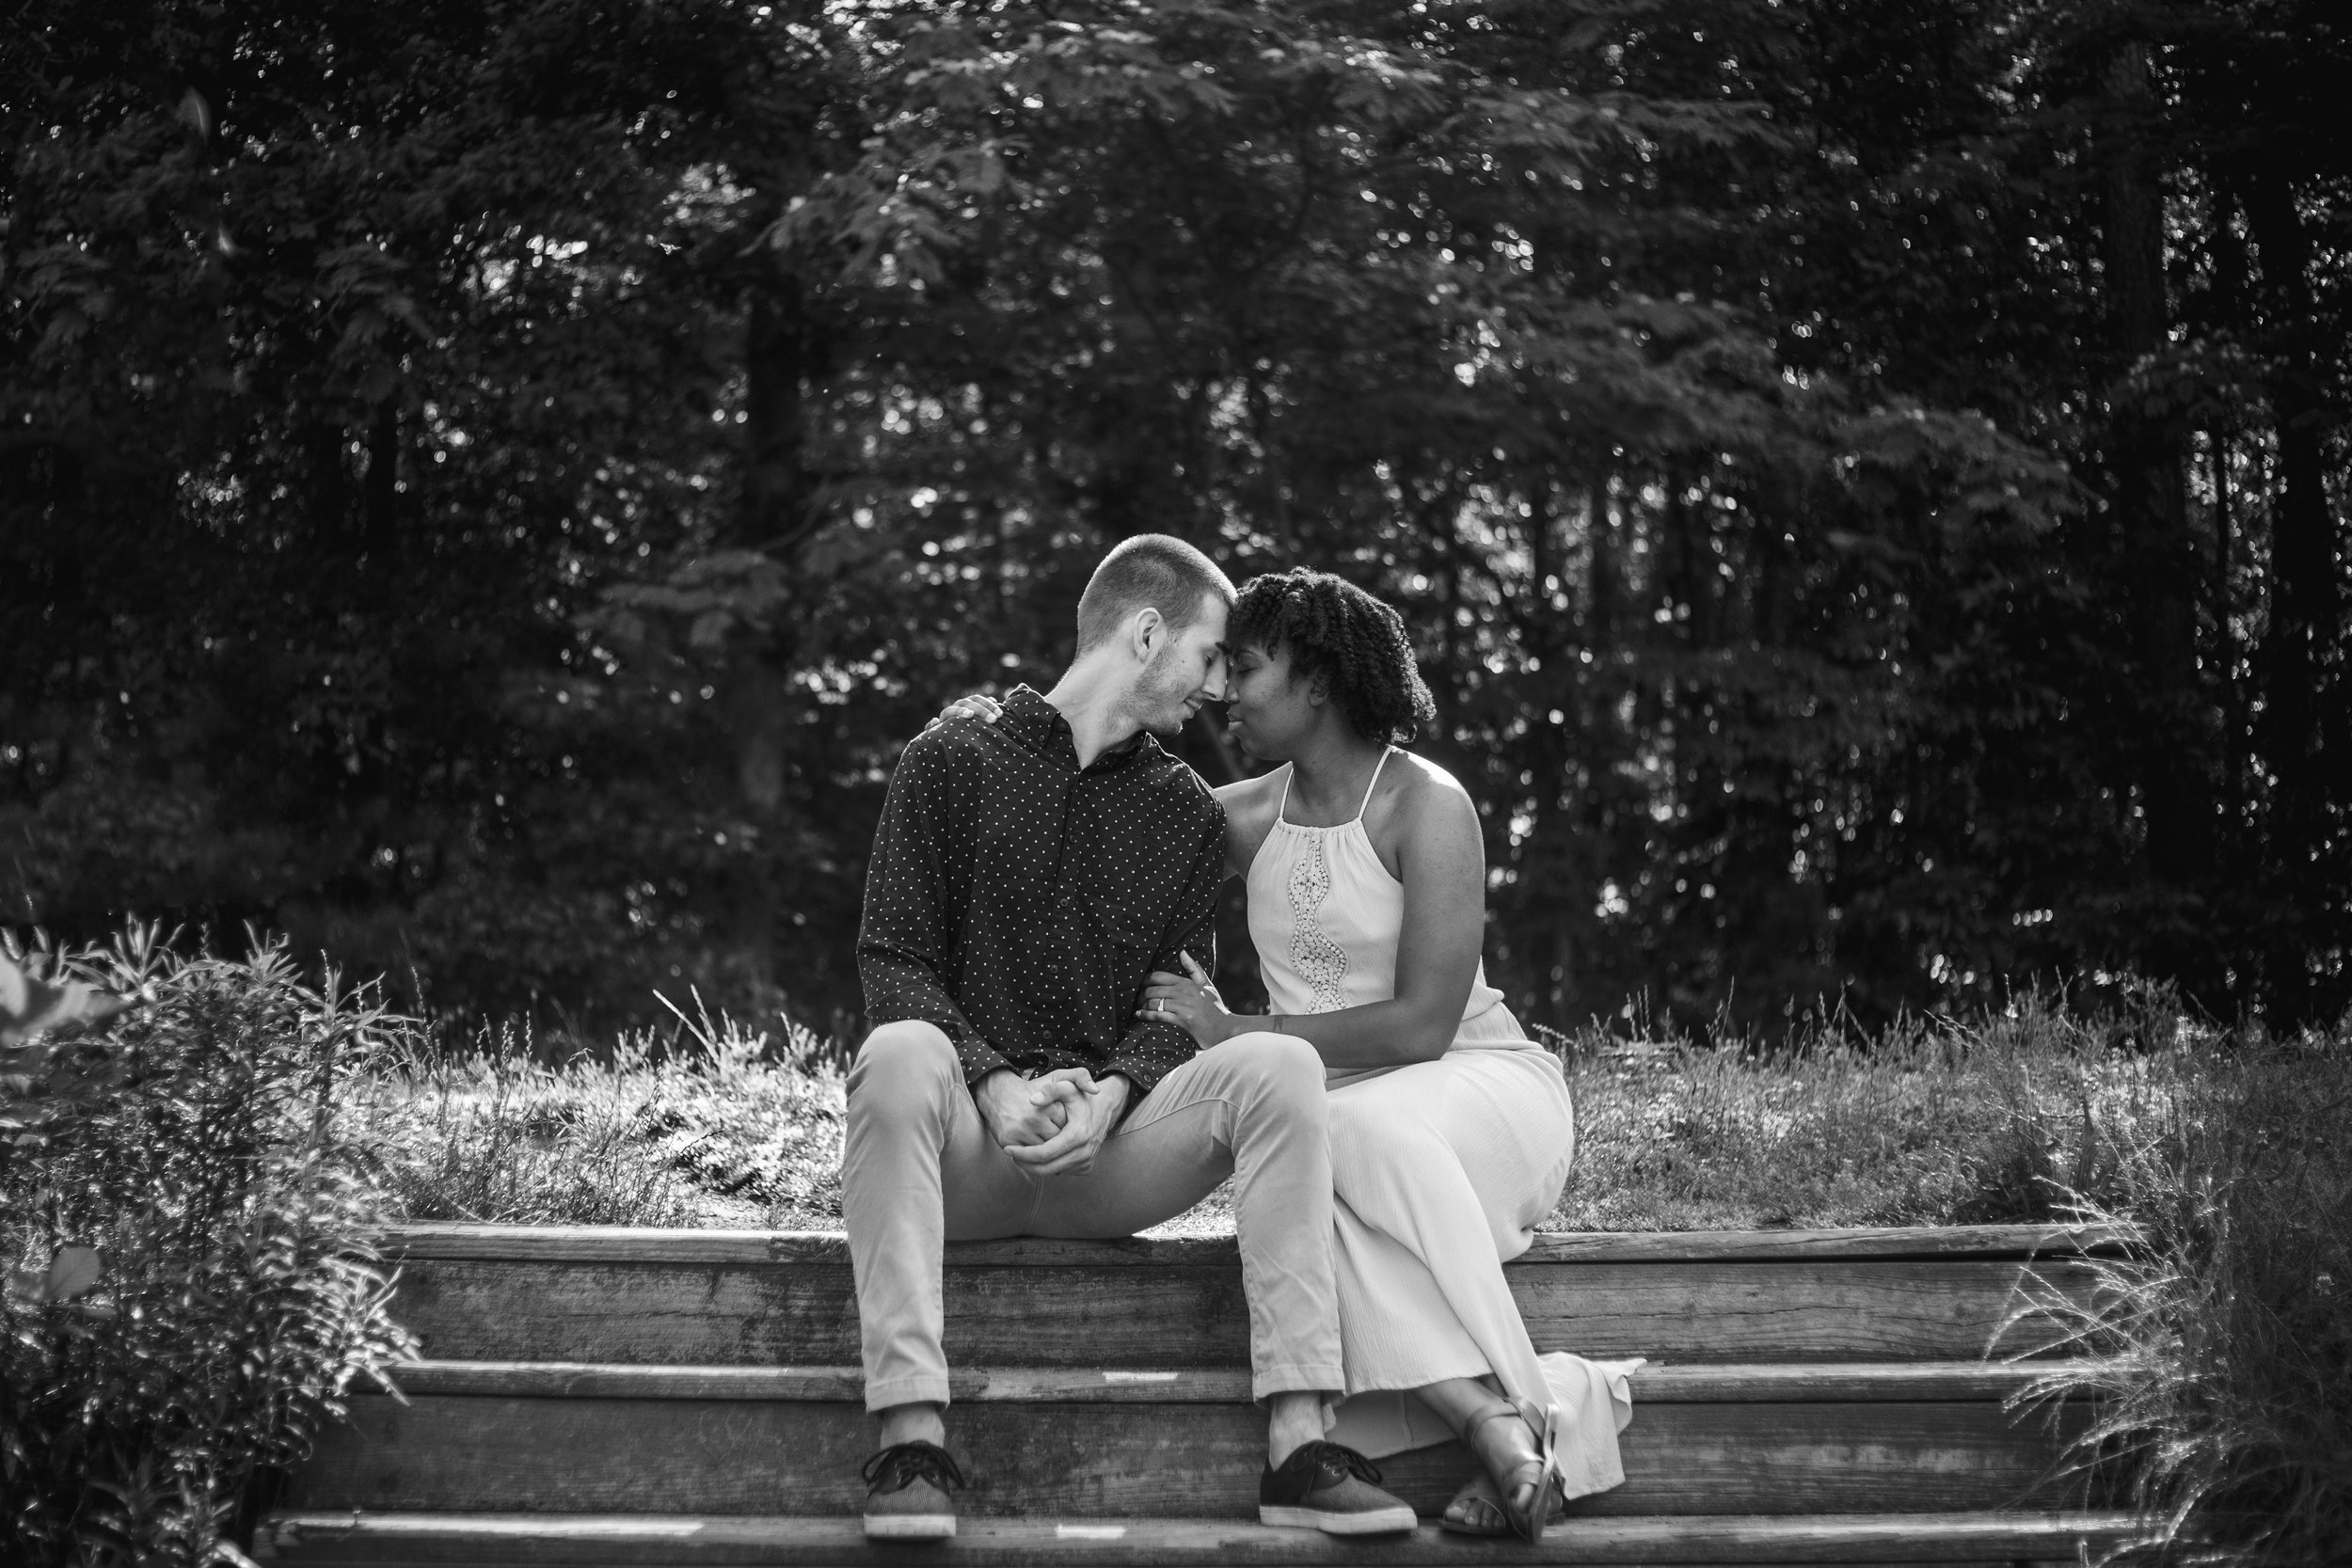 Sope-Creek-Marietta-engagement-session-by-Atlanta-photographer-Chanel-French-19.jpg